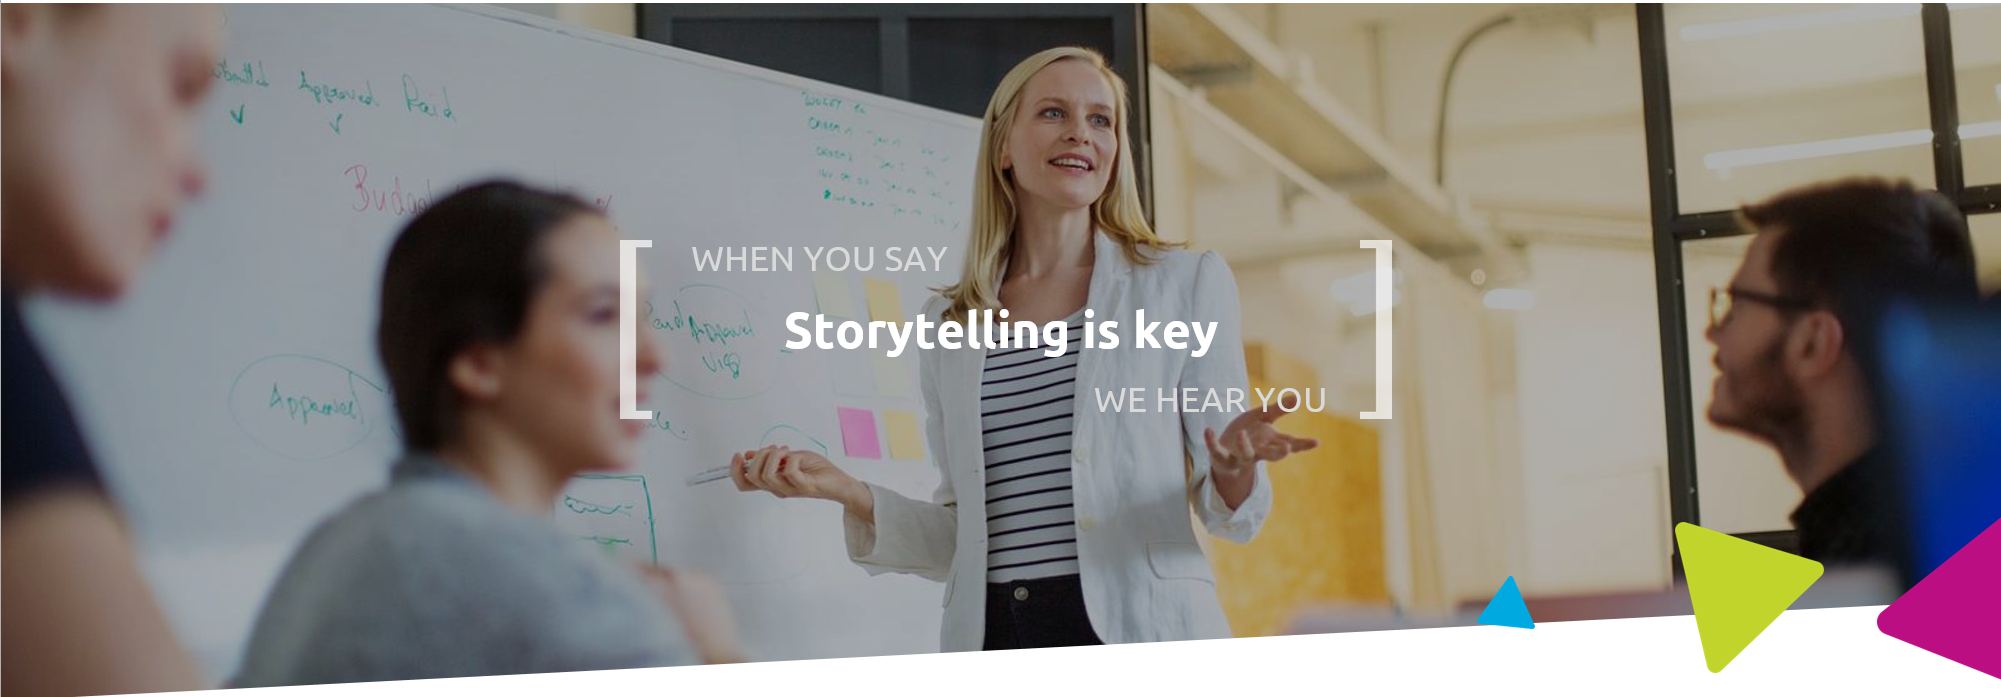 When you say storytelling is key, we hear you